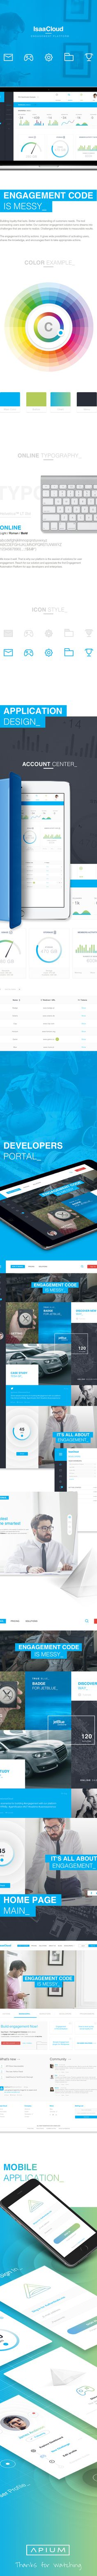 IsaaCloud - Engagement Platform on Behance #aplication